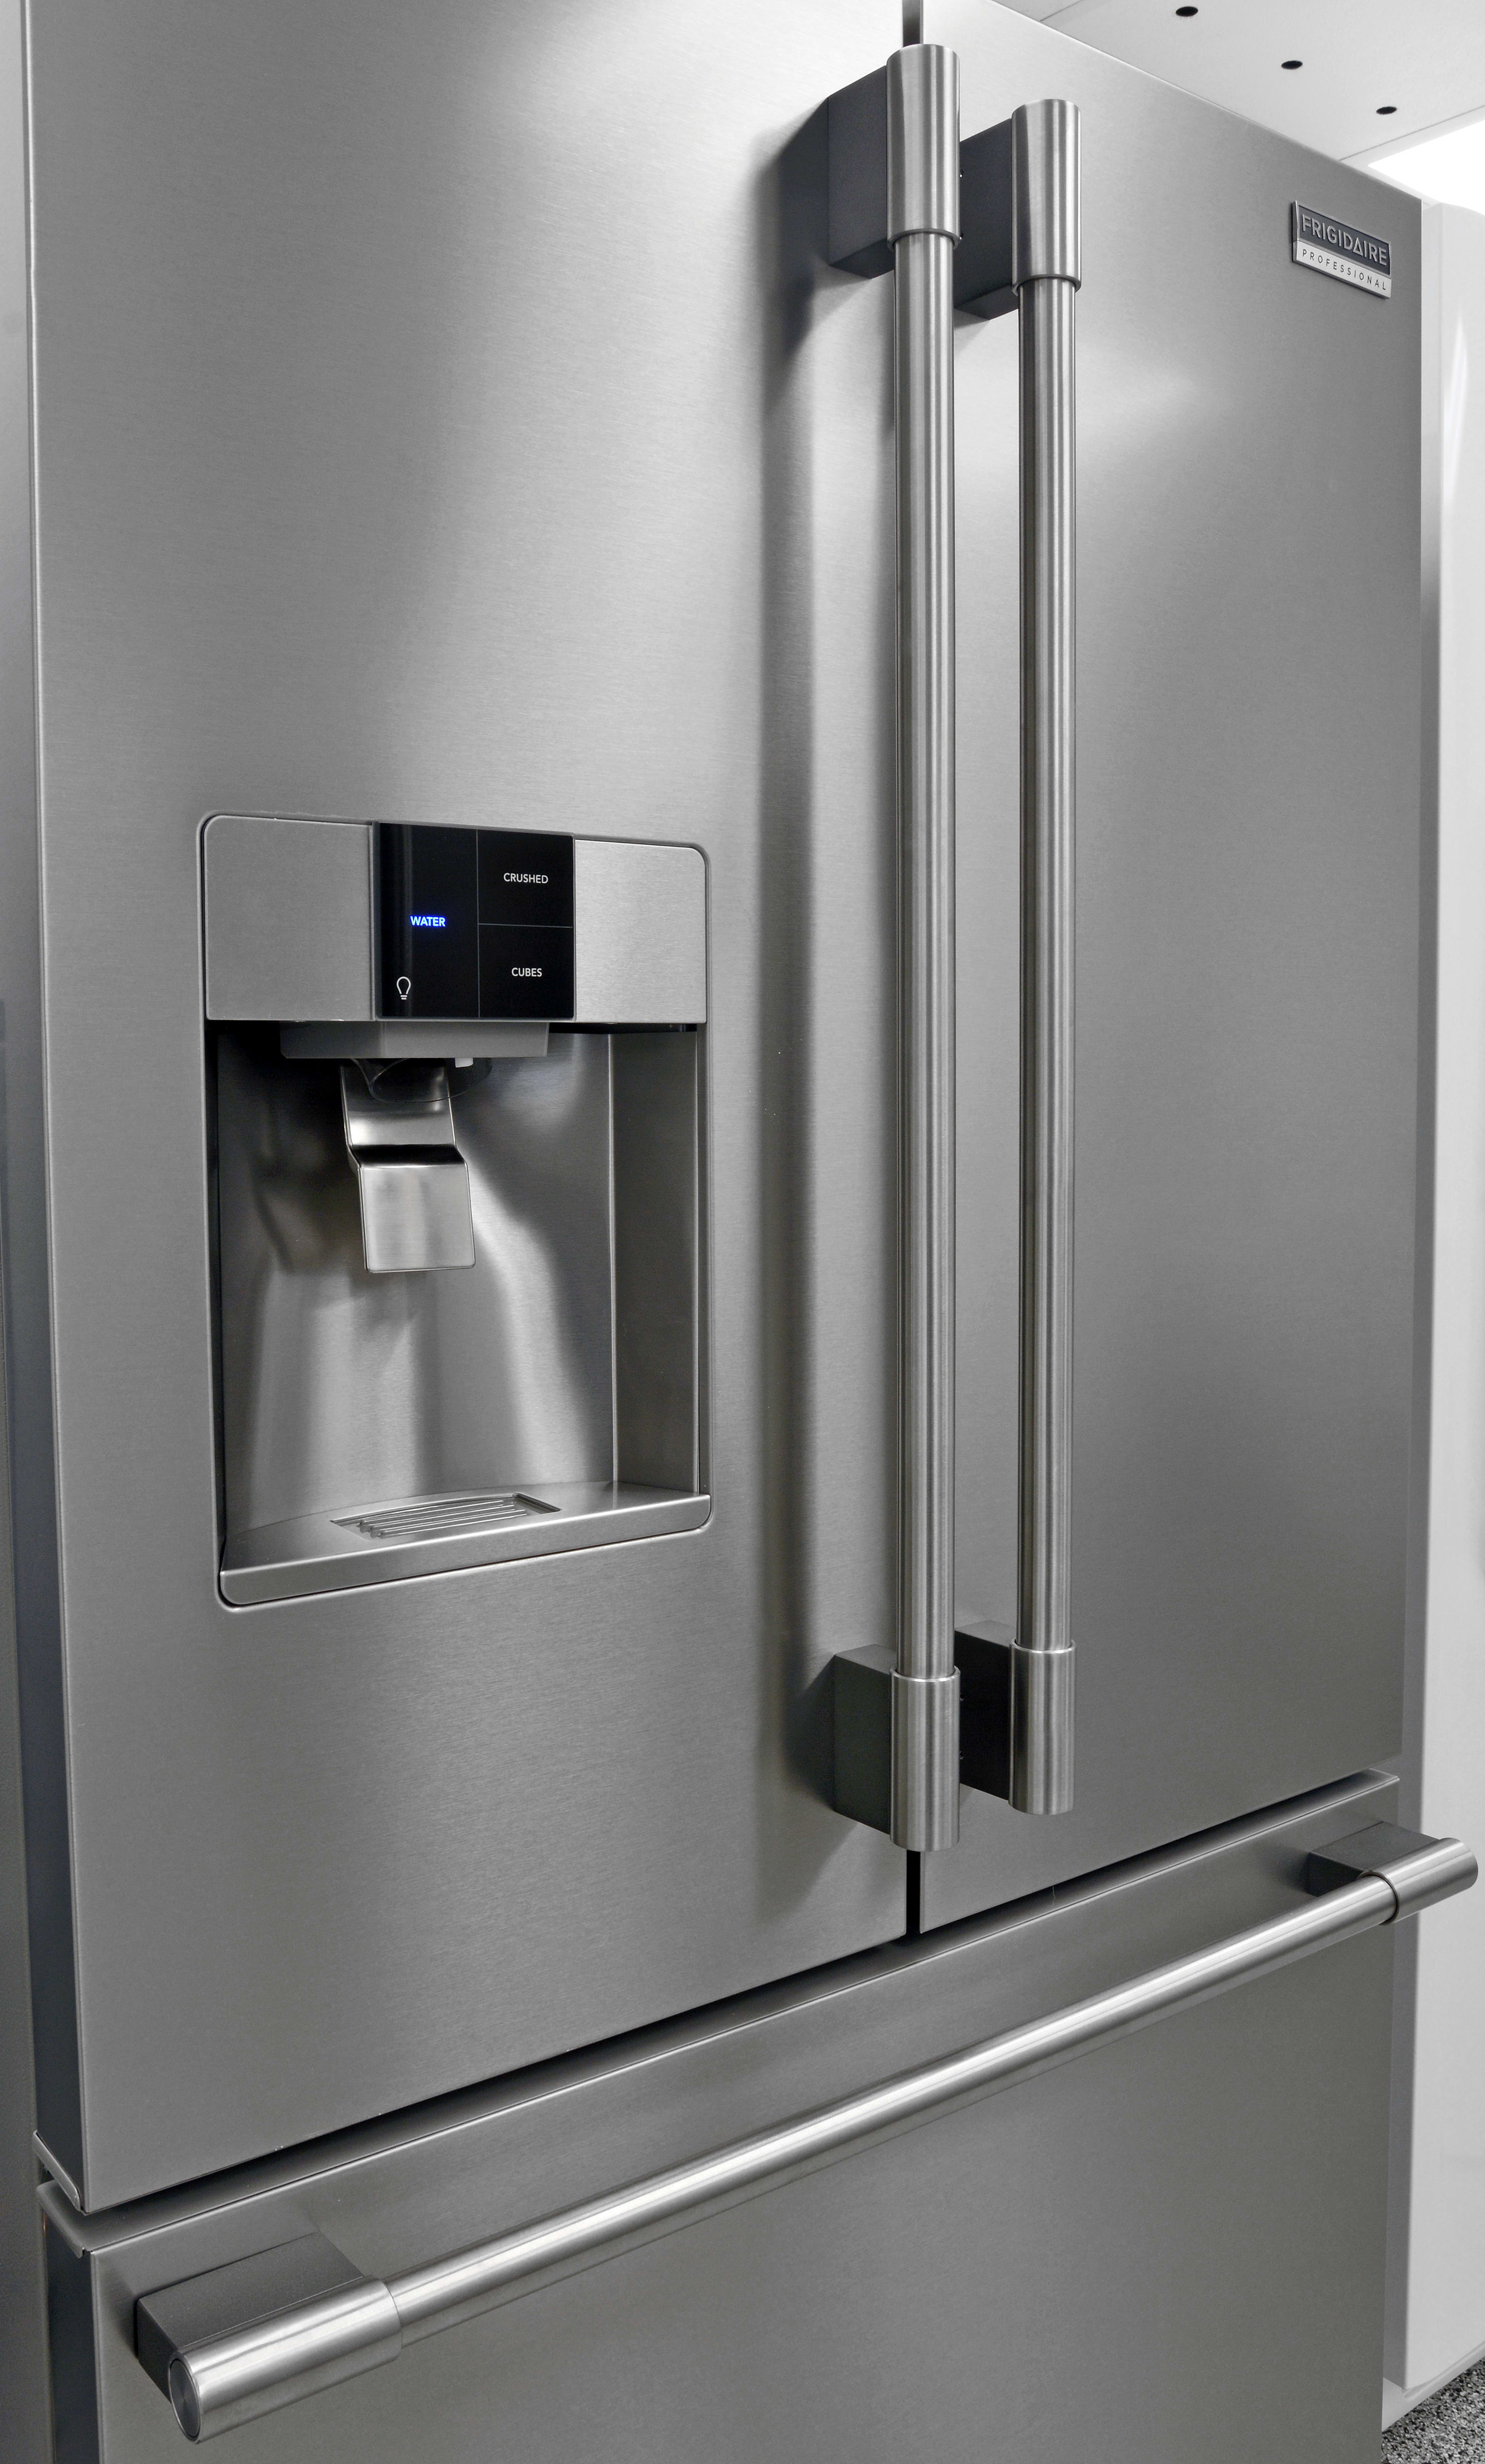 Smooth, tube-like handles give the Frigidaire Professional FPBC2277RF a sturdy yet graceful appearance.